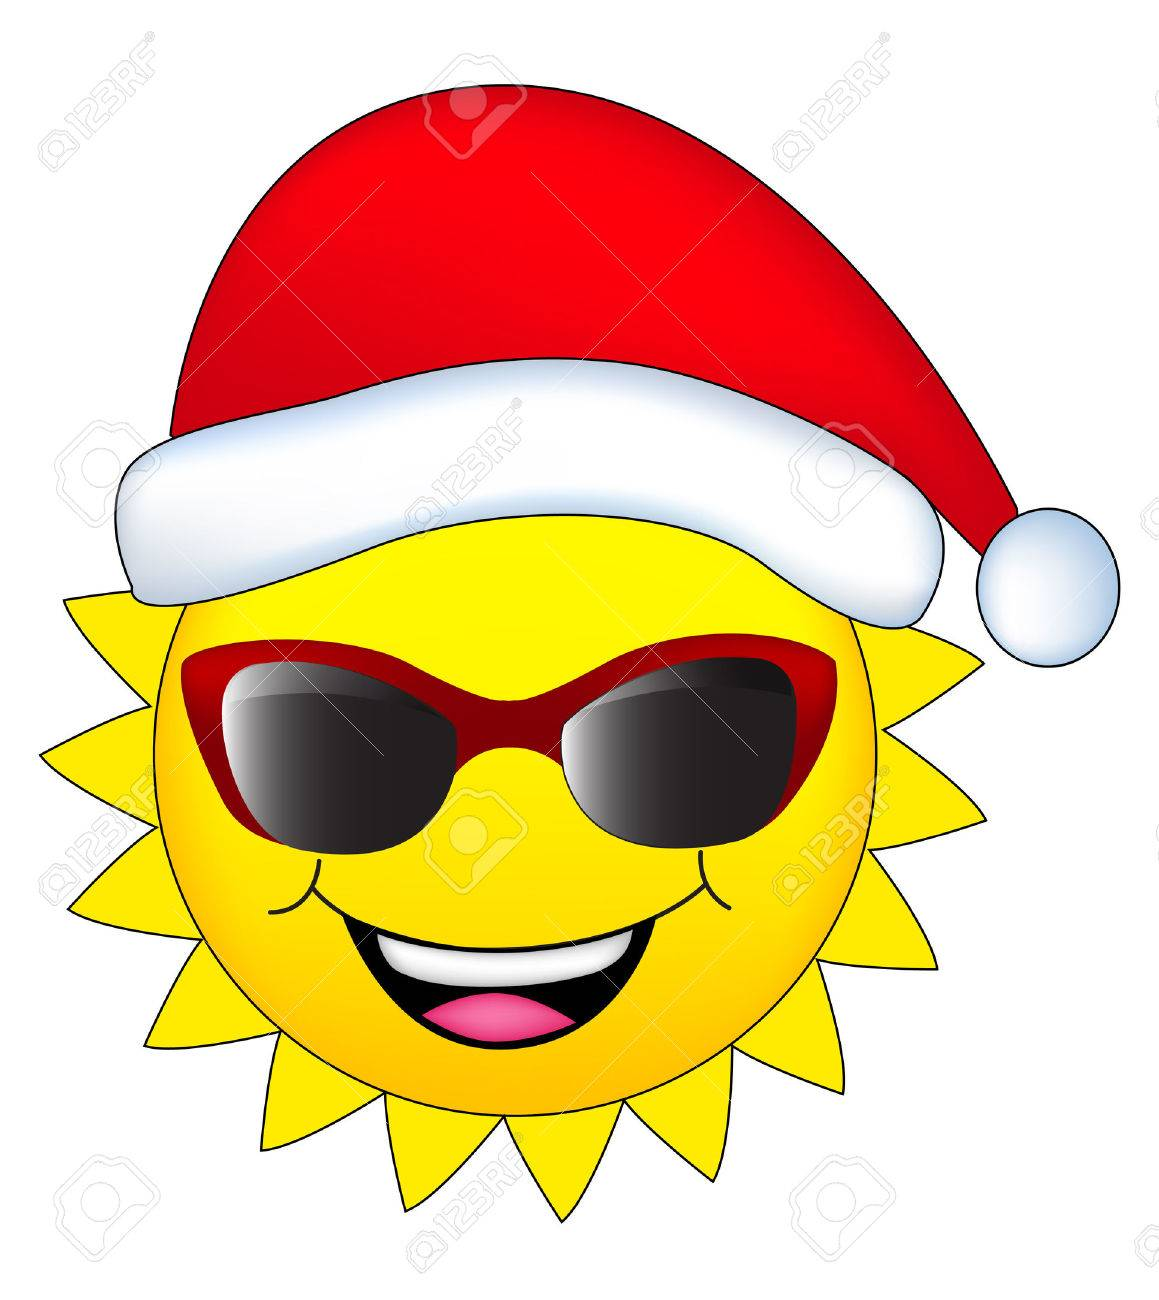 Christmas In July Clipart Free.Cute Sun Wearing A Red Santa Hat Christmas In July Design